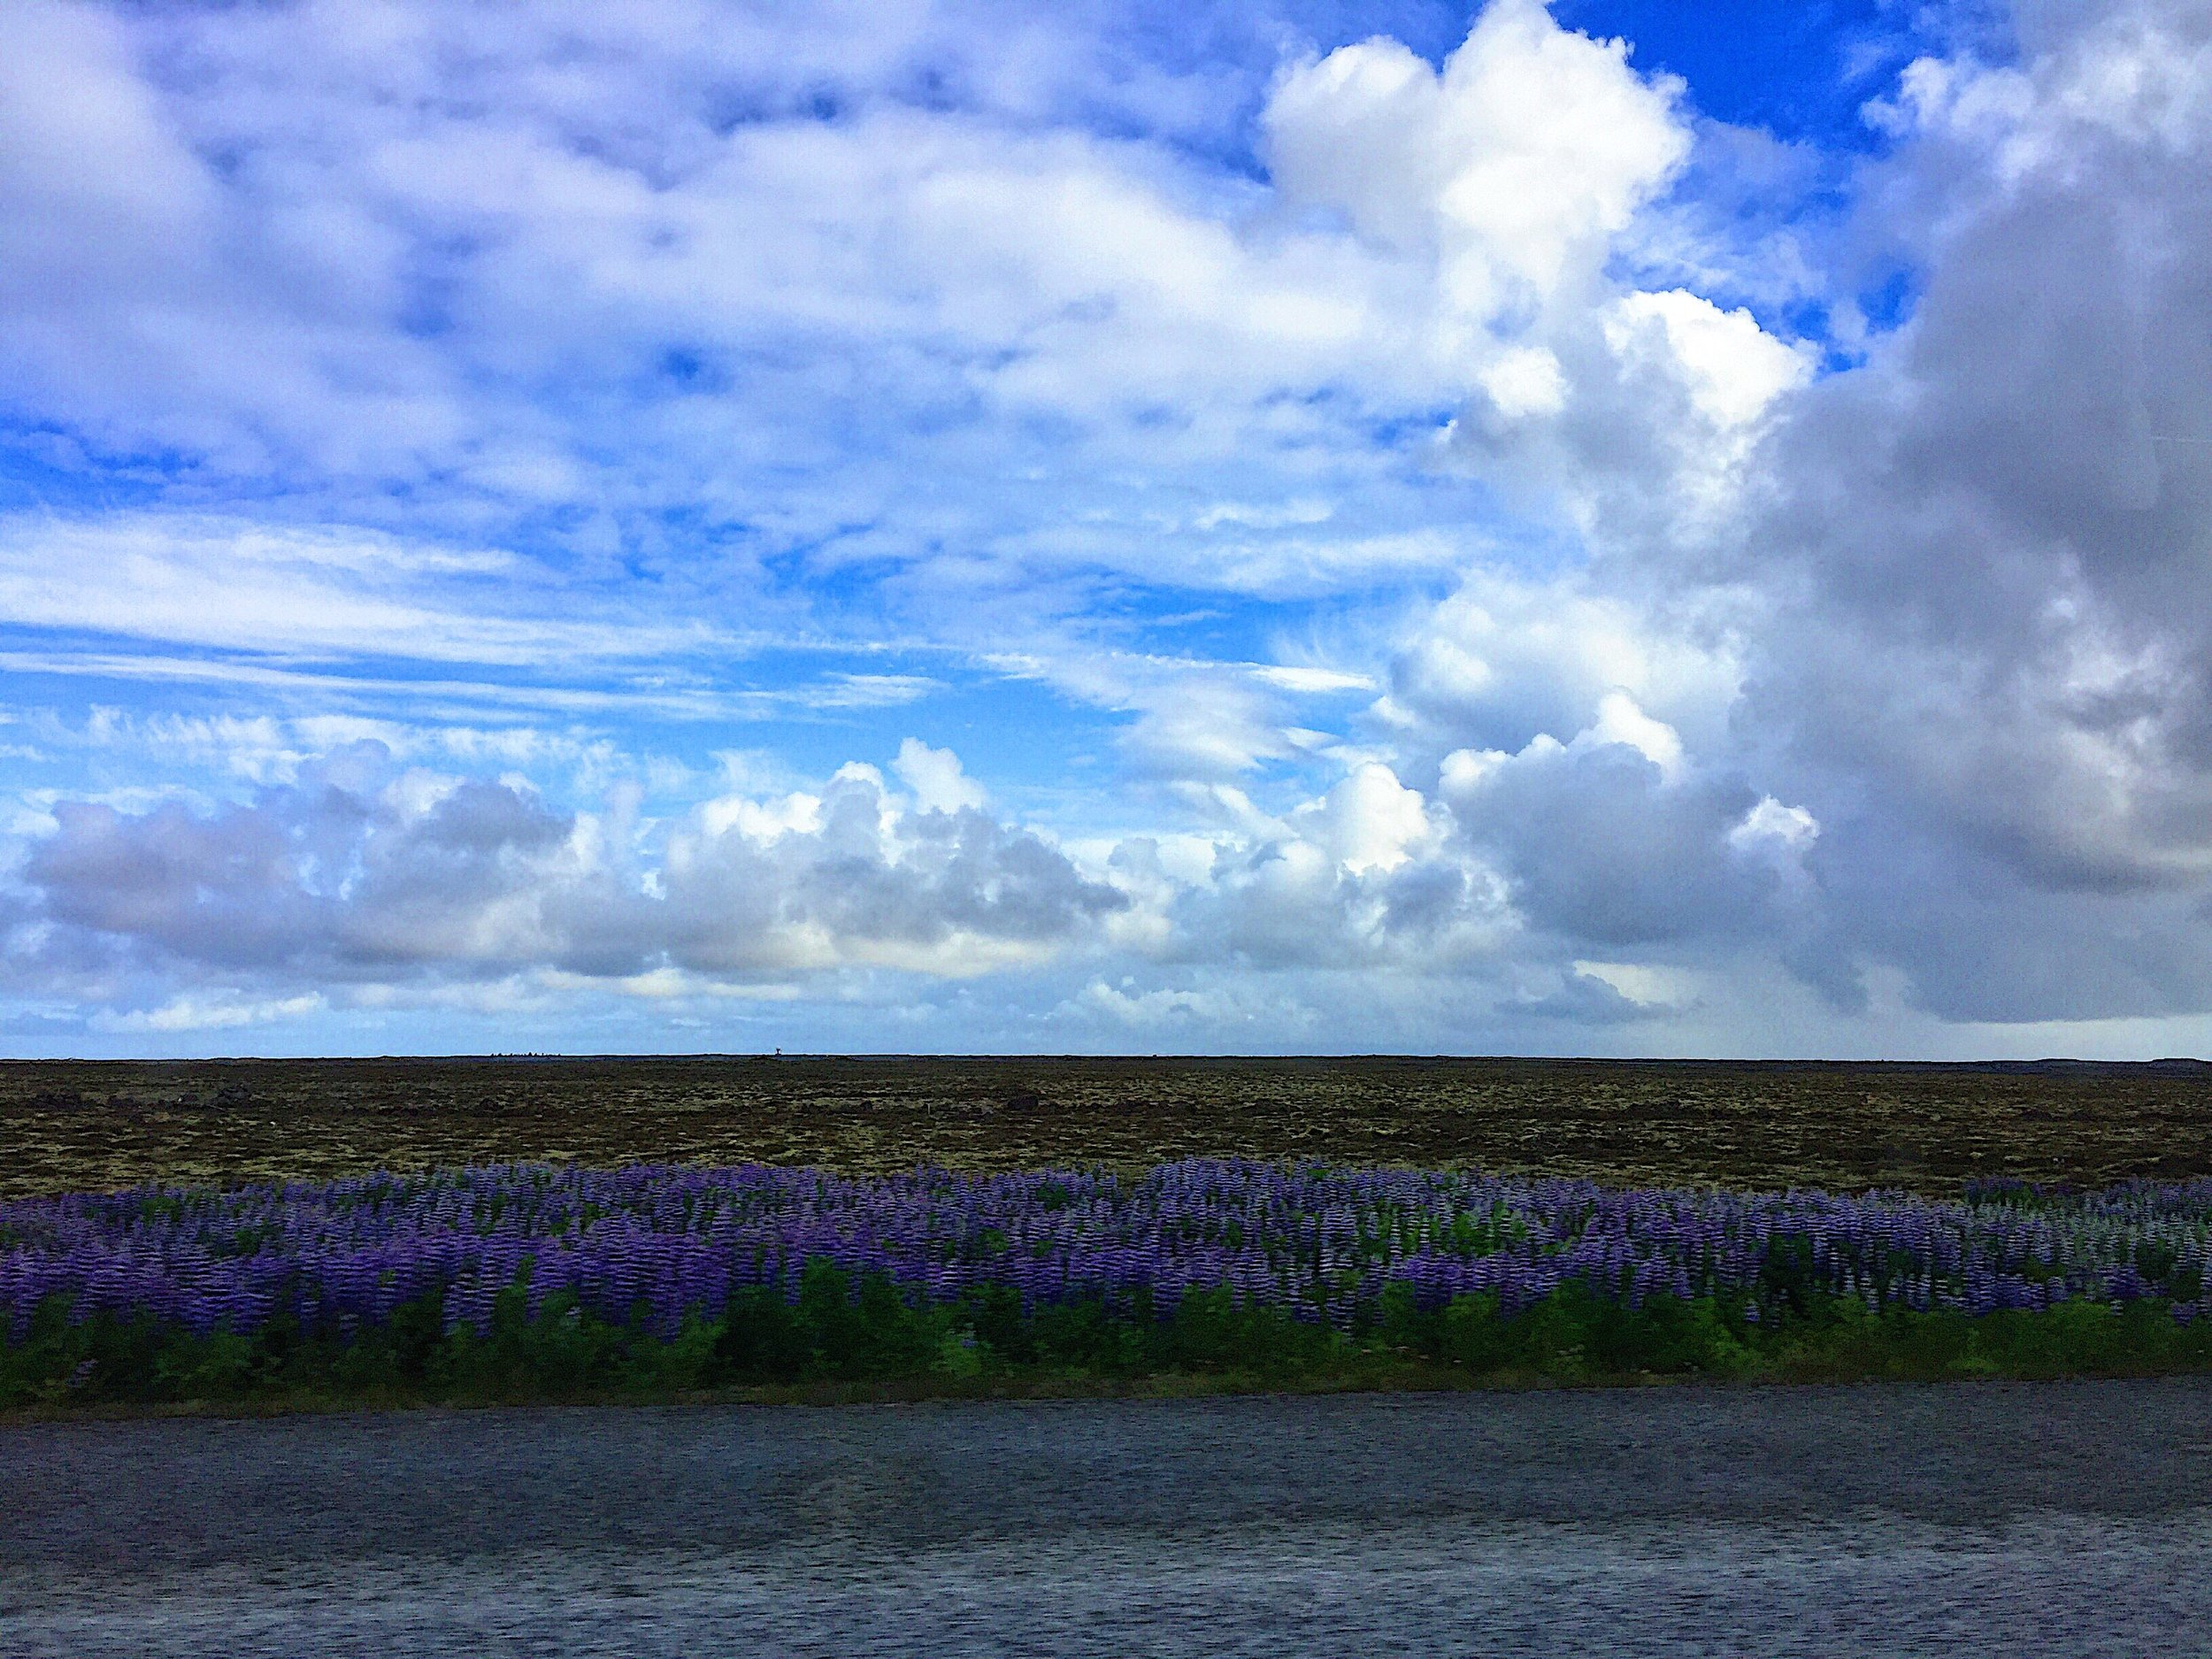 Violet flowers called lupine line the Ring Road in Iceland contrasting with the volcanic soil and open sky.